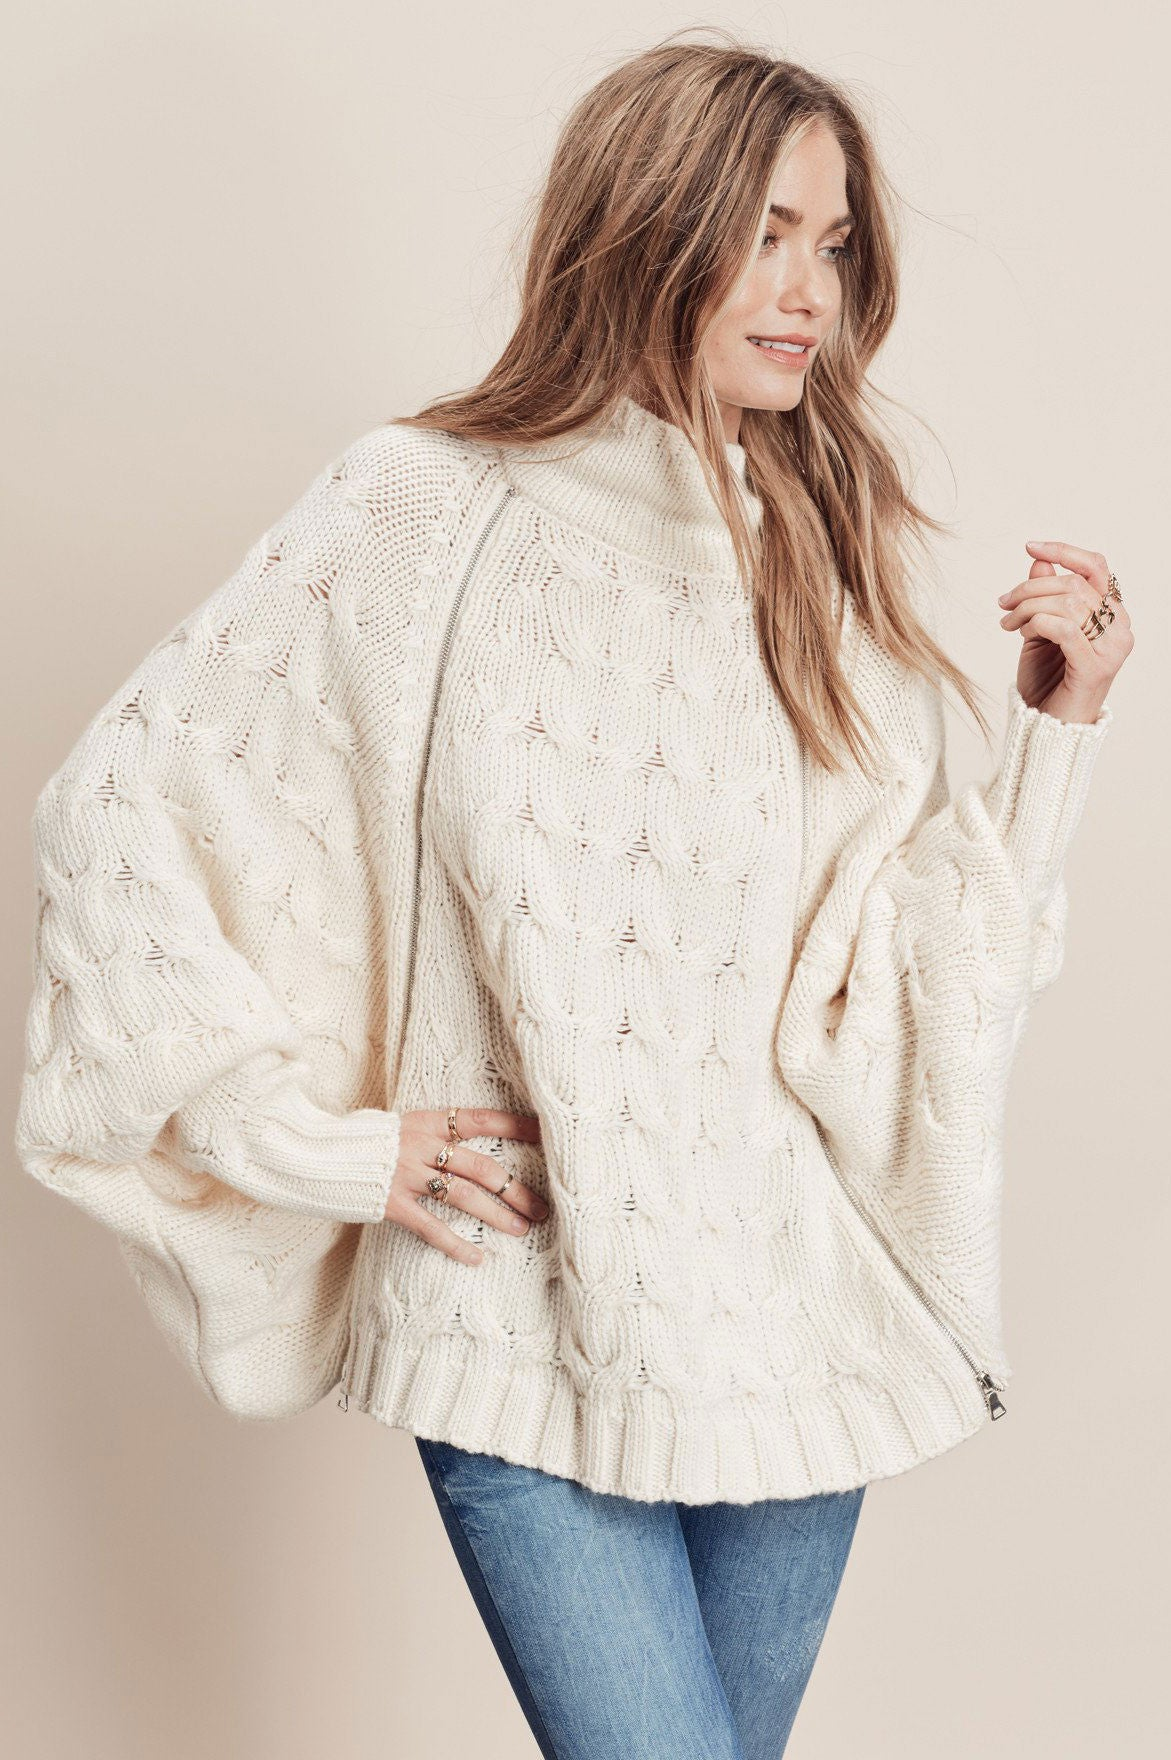 Women's long dolman sleeve chuncky knit sweater in cream. Oversized sweater. Cute fall outfits